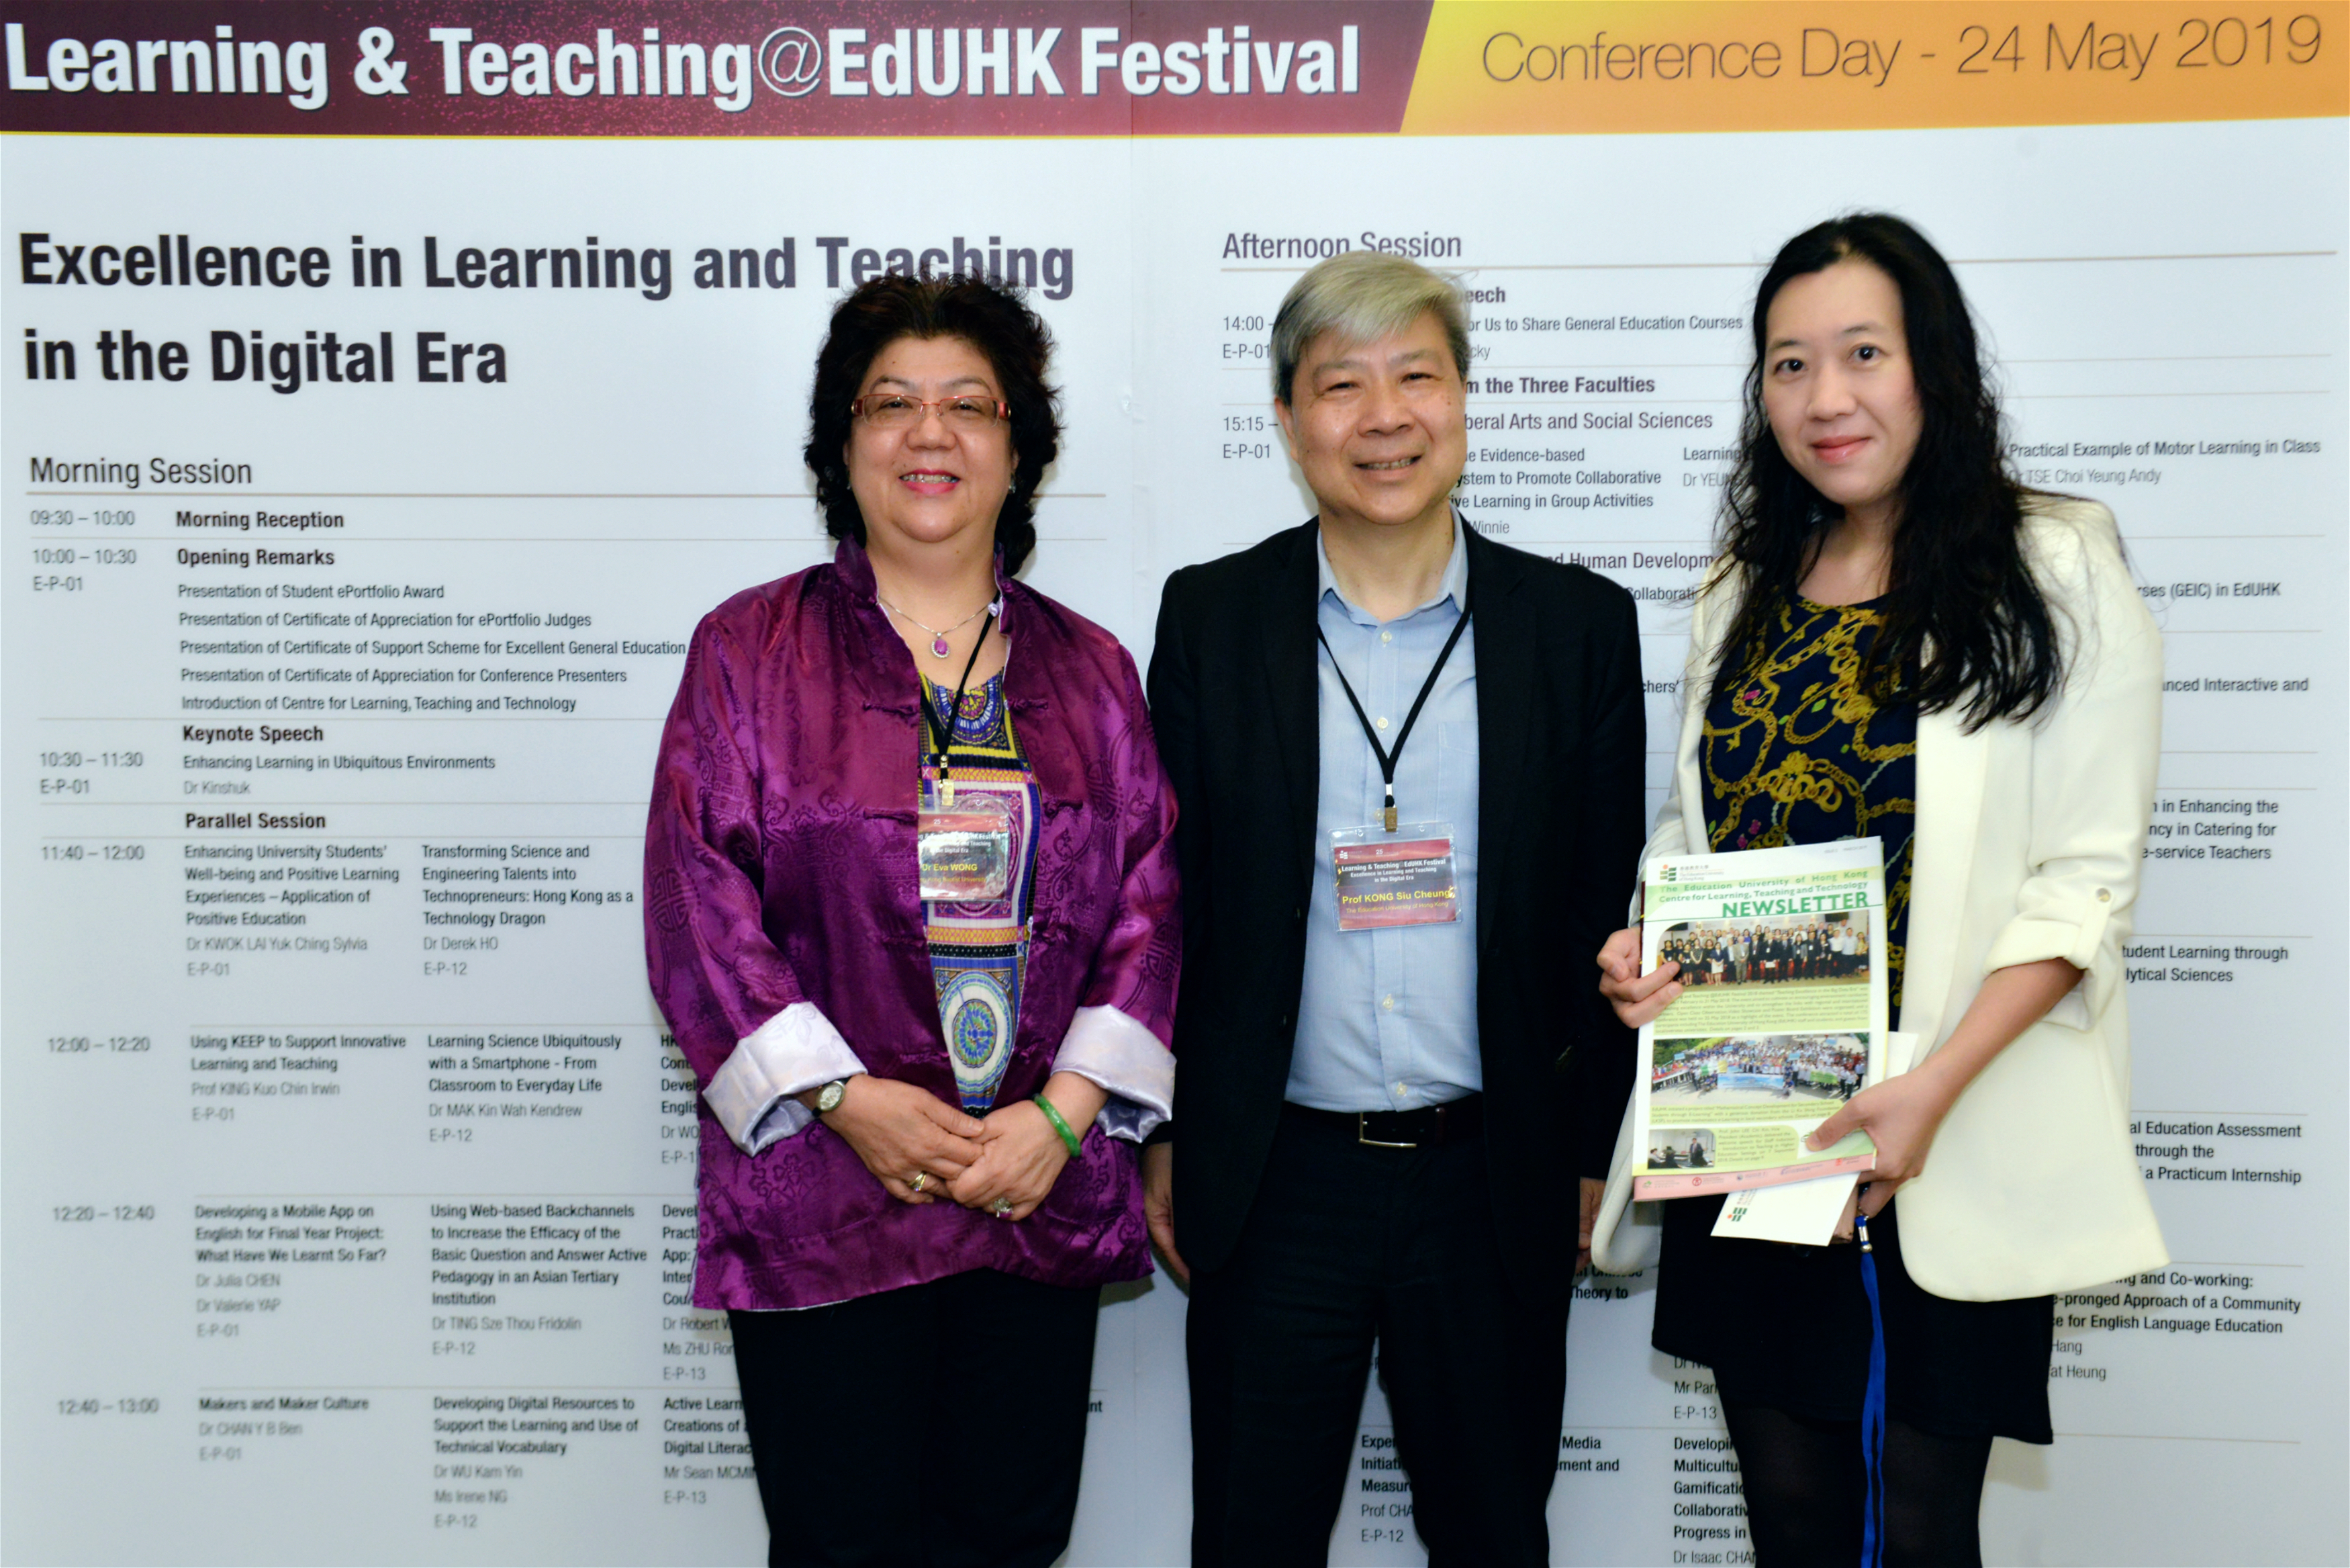 24th May 2019 – Dr. Cecilia Chan presented at Learning and Teaching @EdUHK Festival 2019